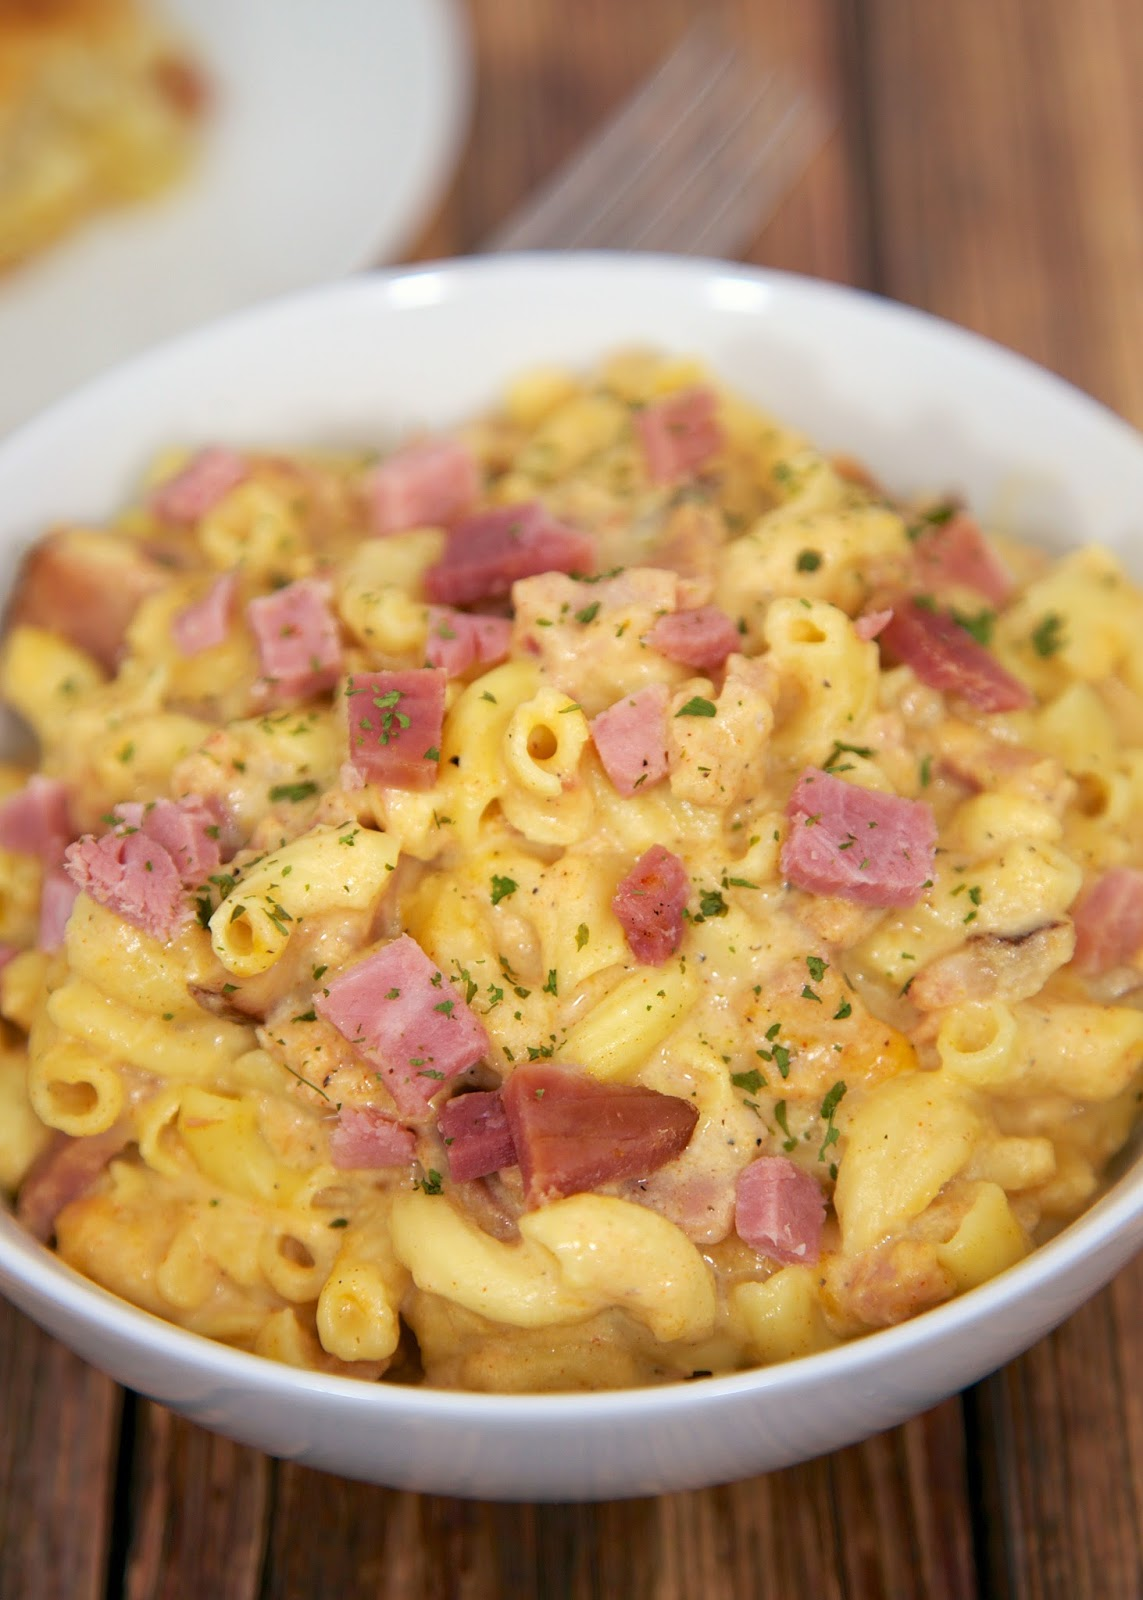 Slow Cooker Macaroni & Cheese with Ham - great flavor and ready in 90 minutes. Can serve without ham as side dish.